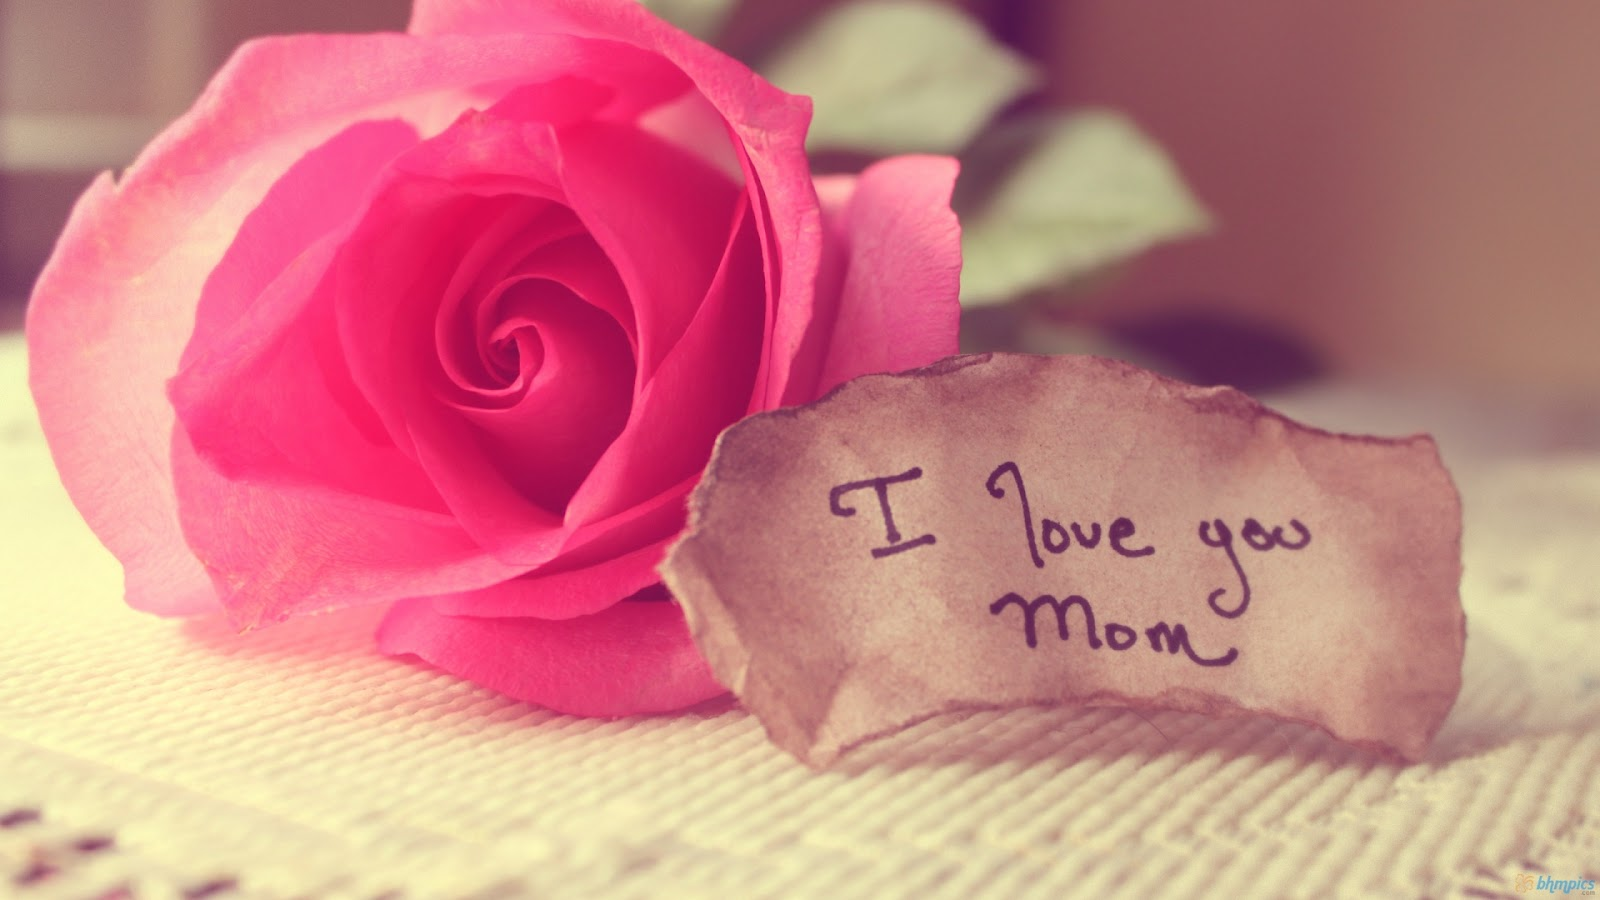 I Love You Mom.20 Birthday Wishes Thank You Messages To Friends 2014